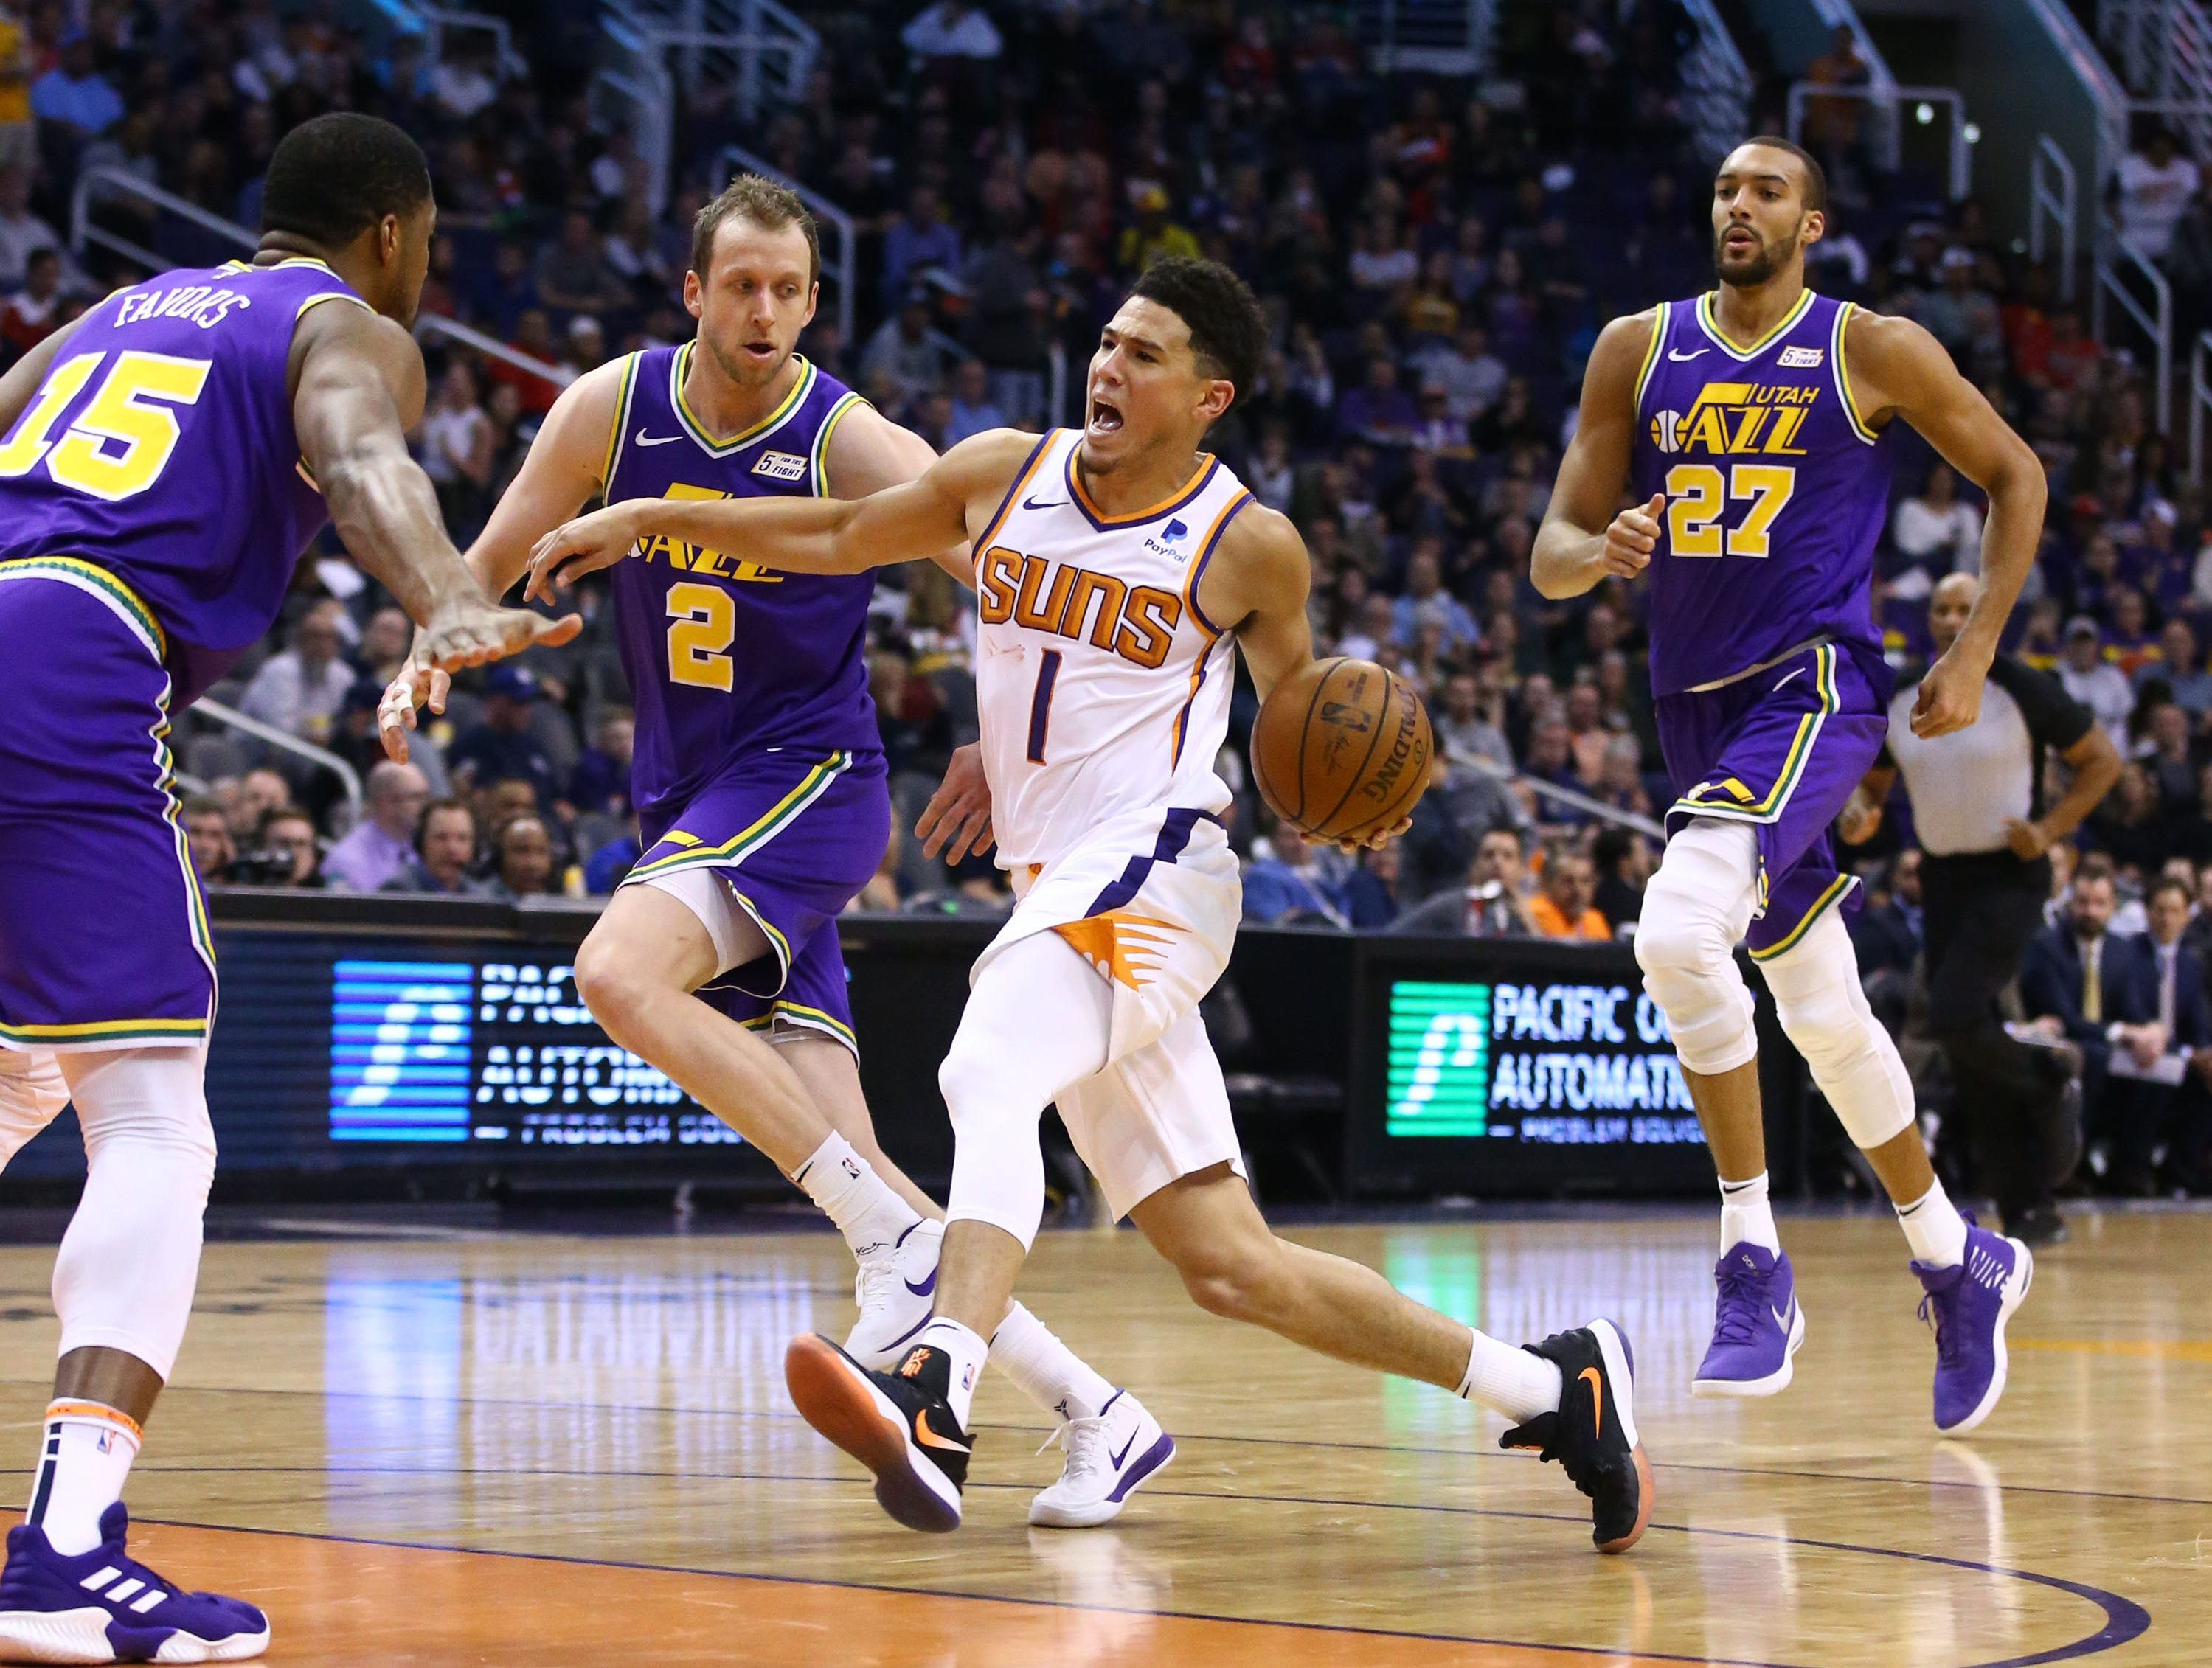 Phoenix Suns guard Devin Booker (1) drives the ball into the Utah Jazz defense in the second half on Mar. 13, 2019 at Talking Stick Resort Arena in Phoenix, Ariz.